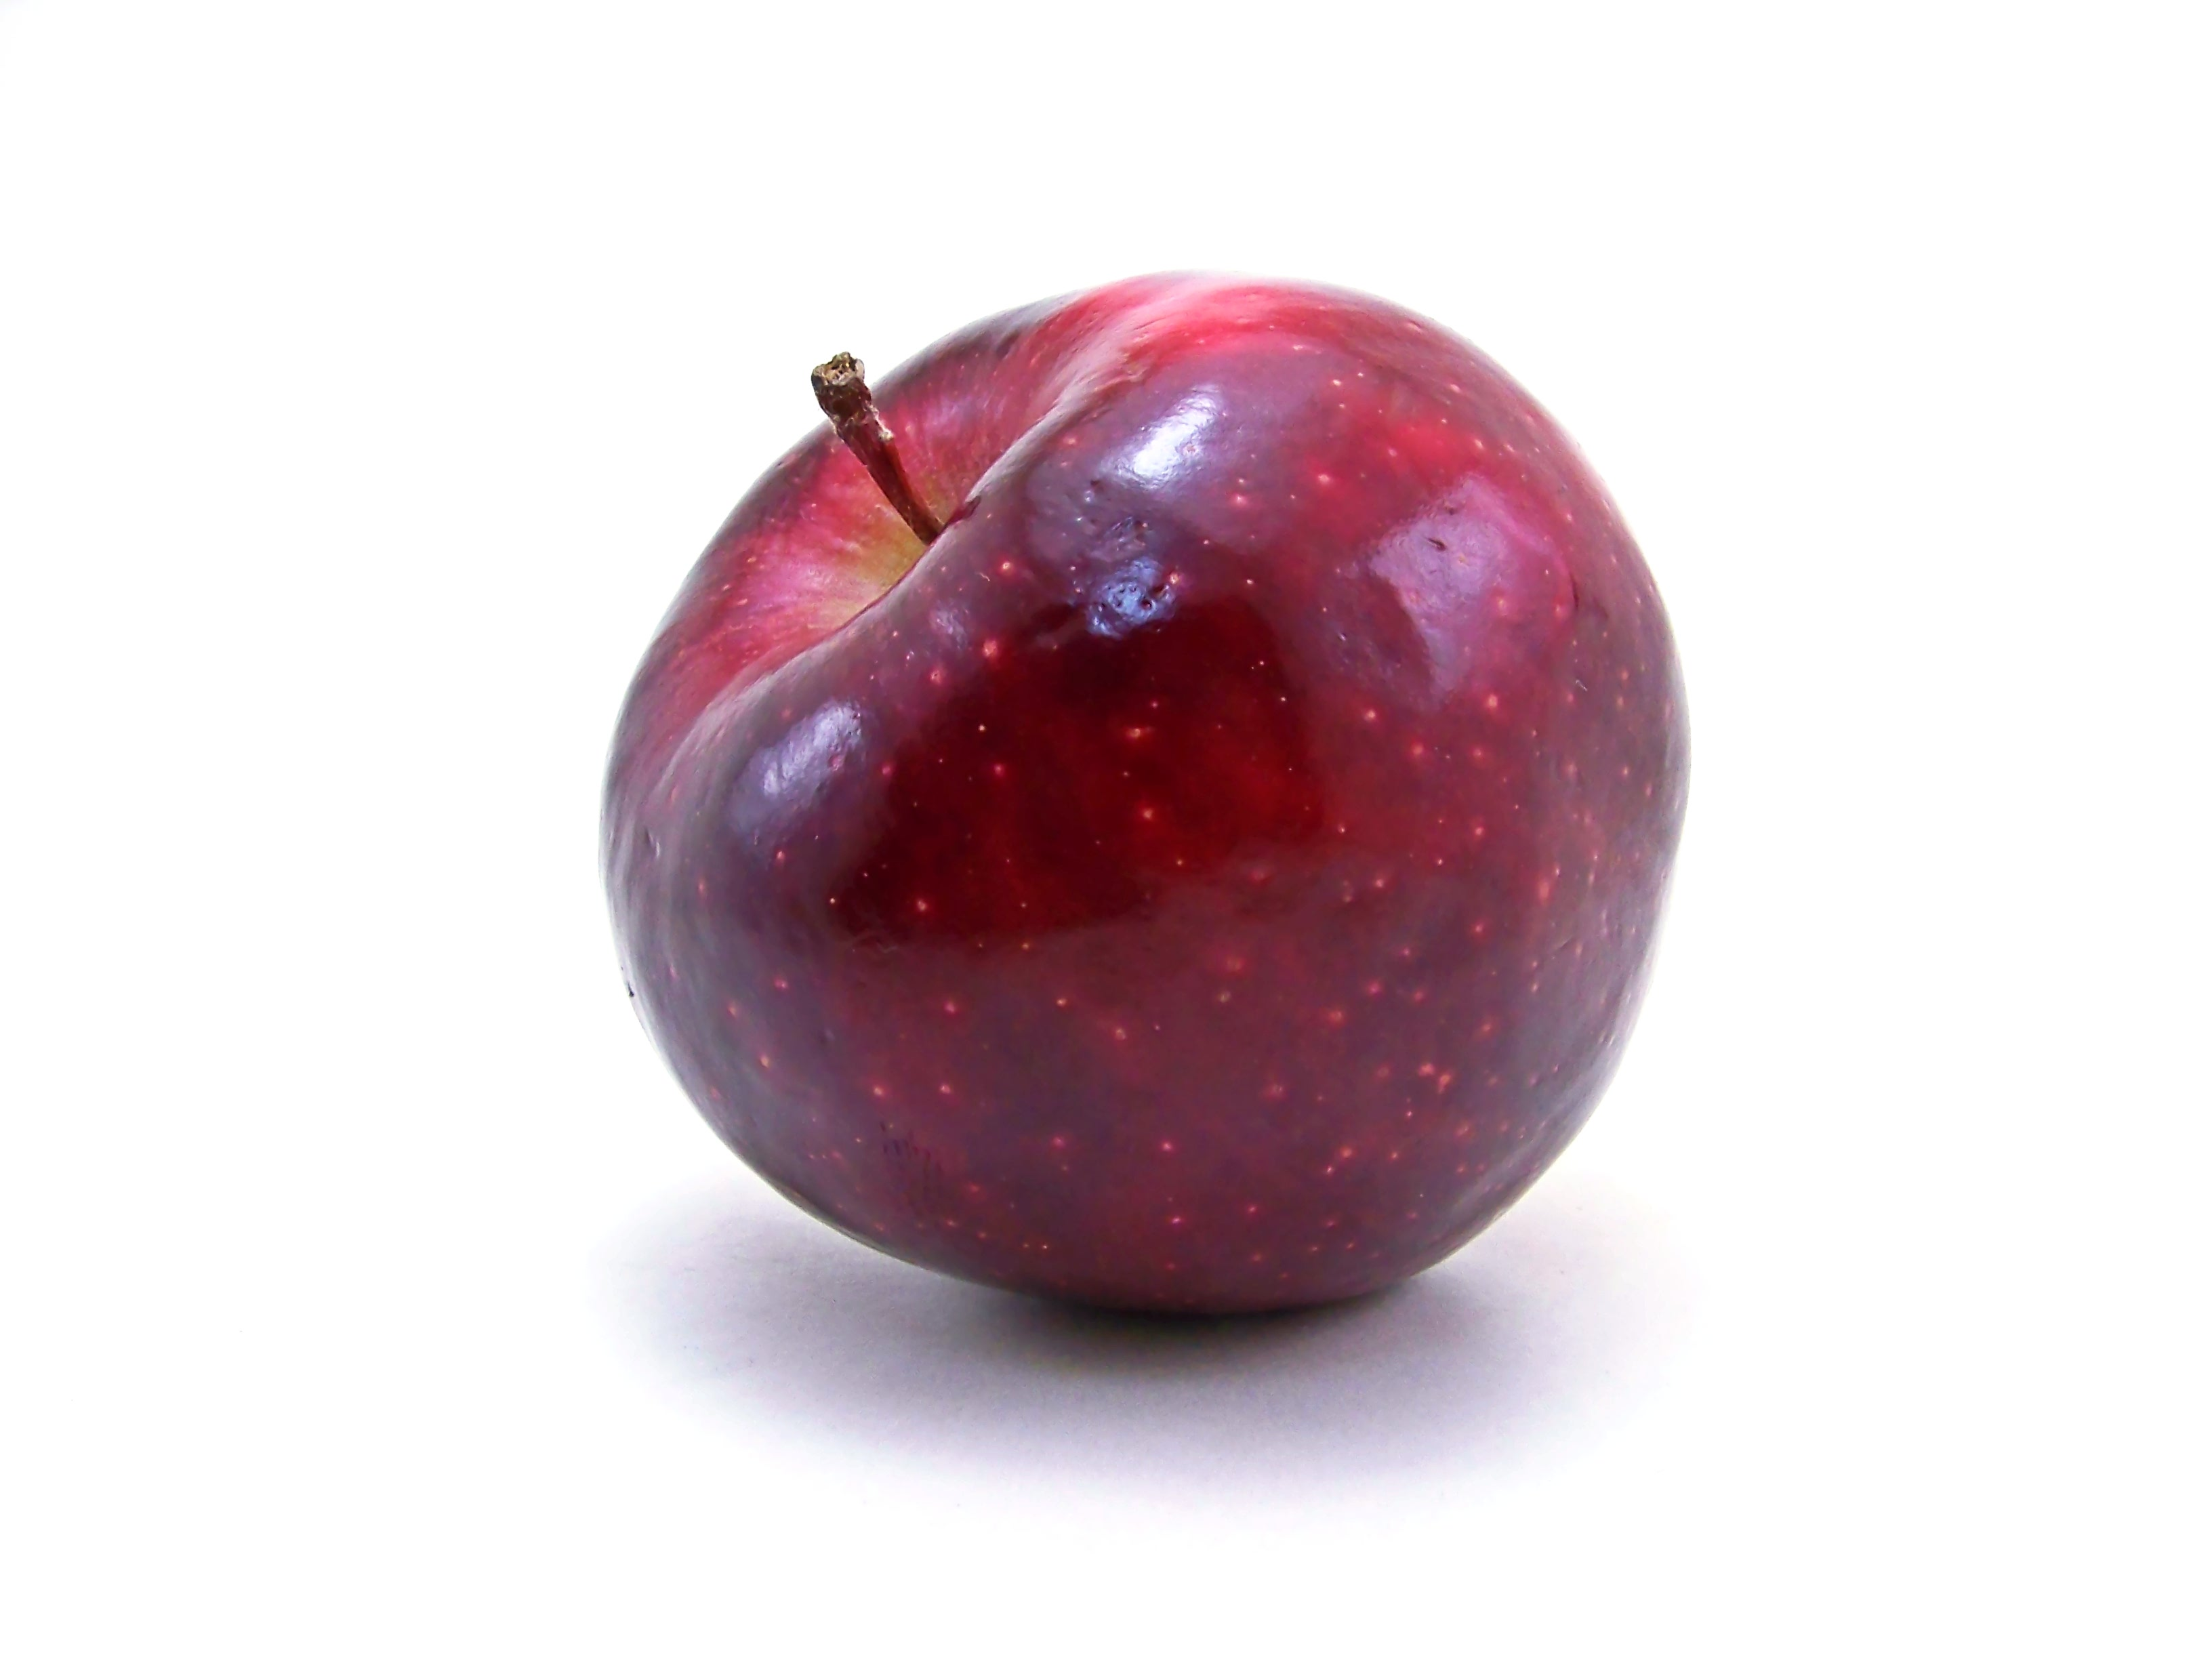 Red apple, Agriculture, Red, Nature, Nutrition, HQ Photo